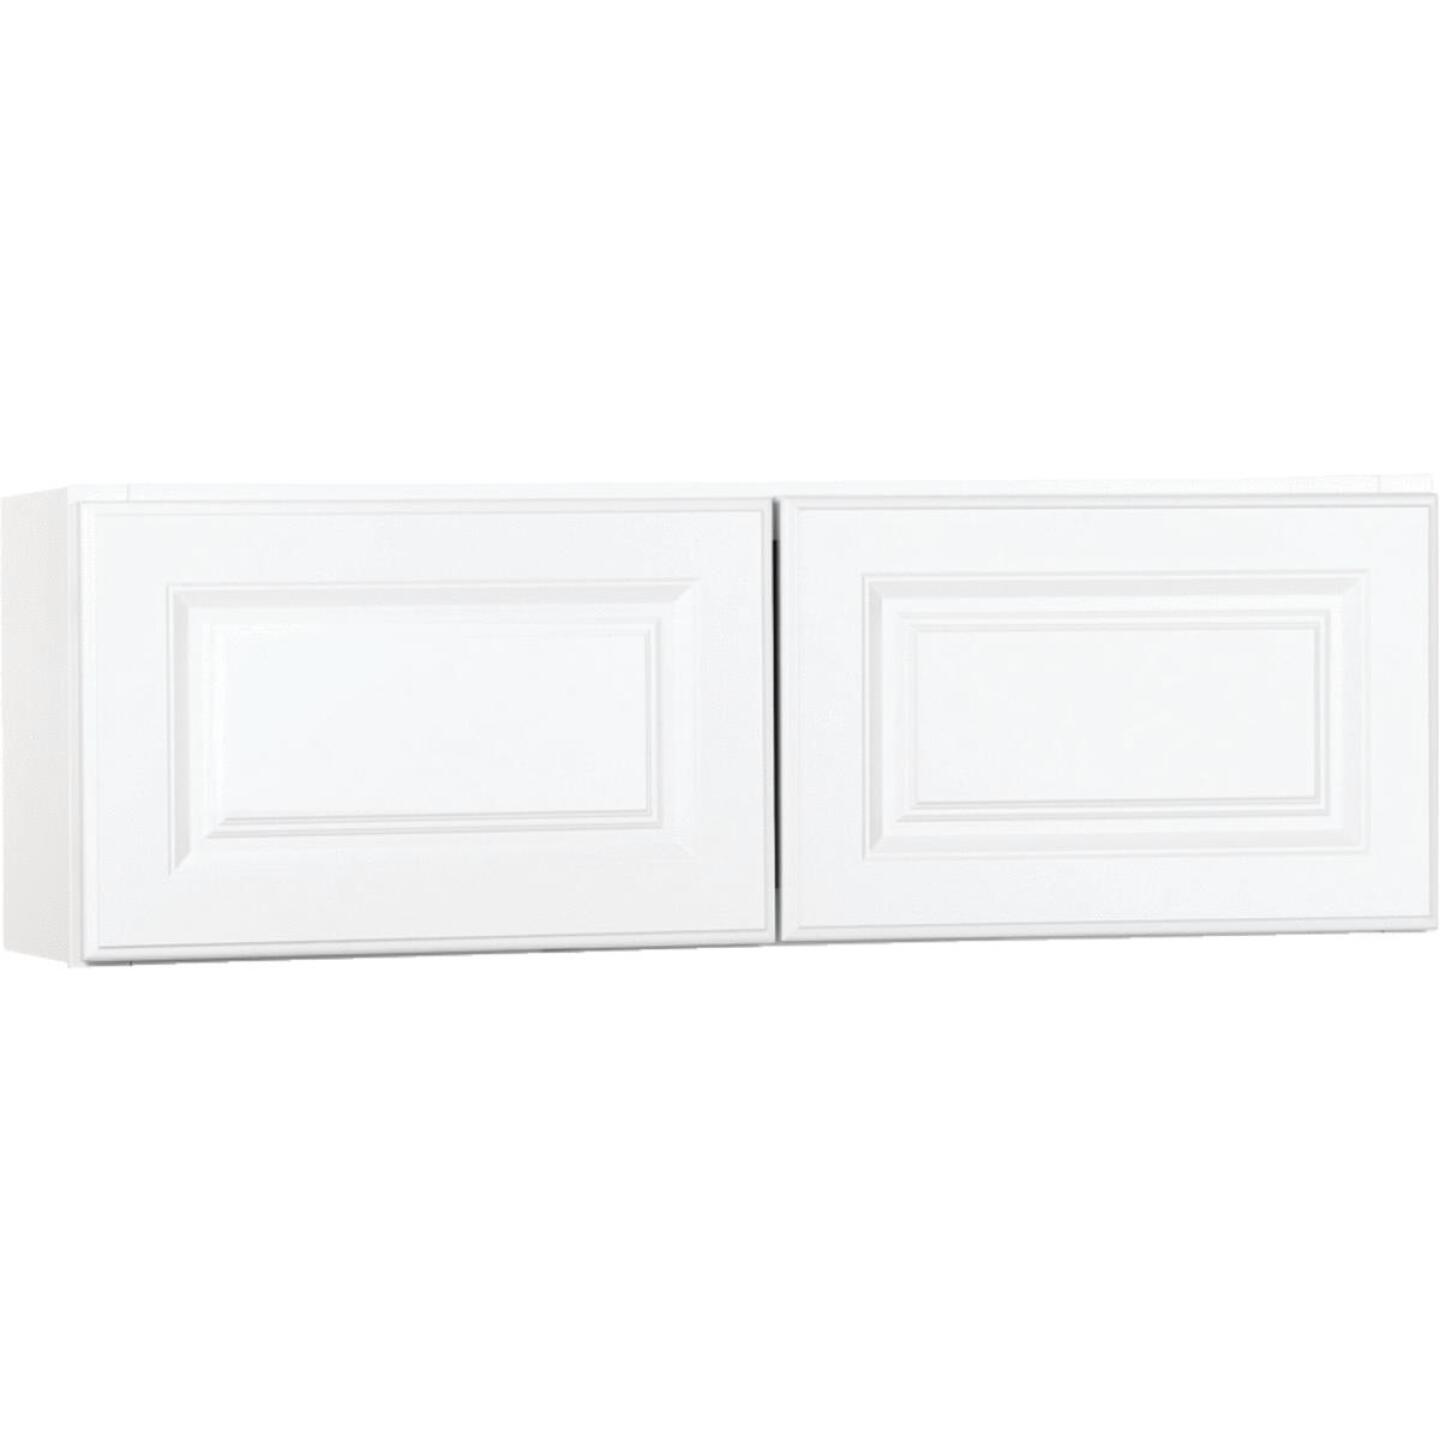 Continental Cabinets Hamilton 36 In. W x 12 In. H x 12 In. D Satin White Maple Bridge Wall Kitchen Cabinet Image 2